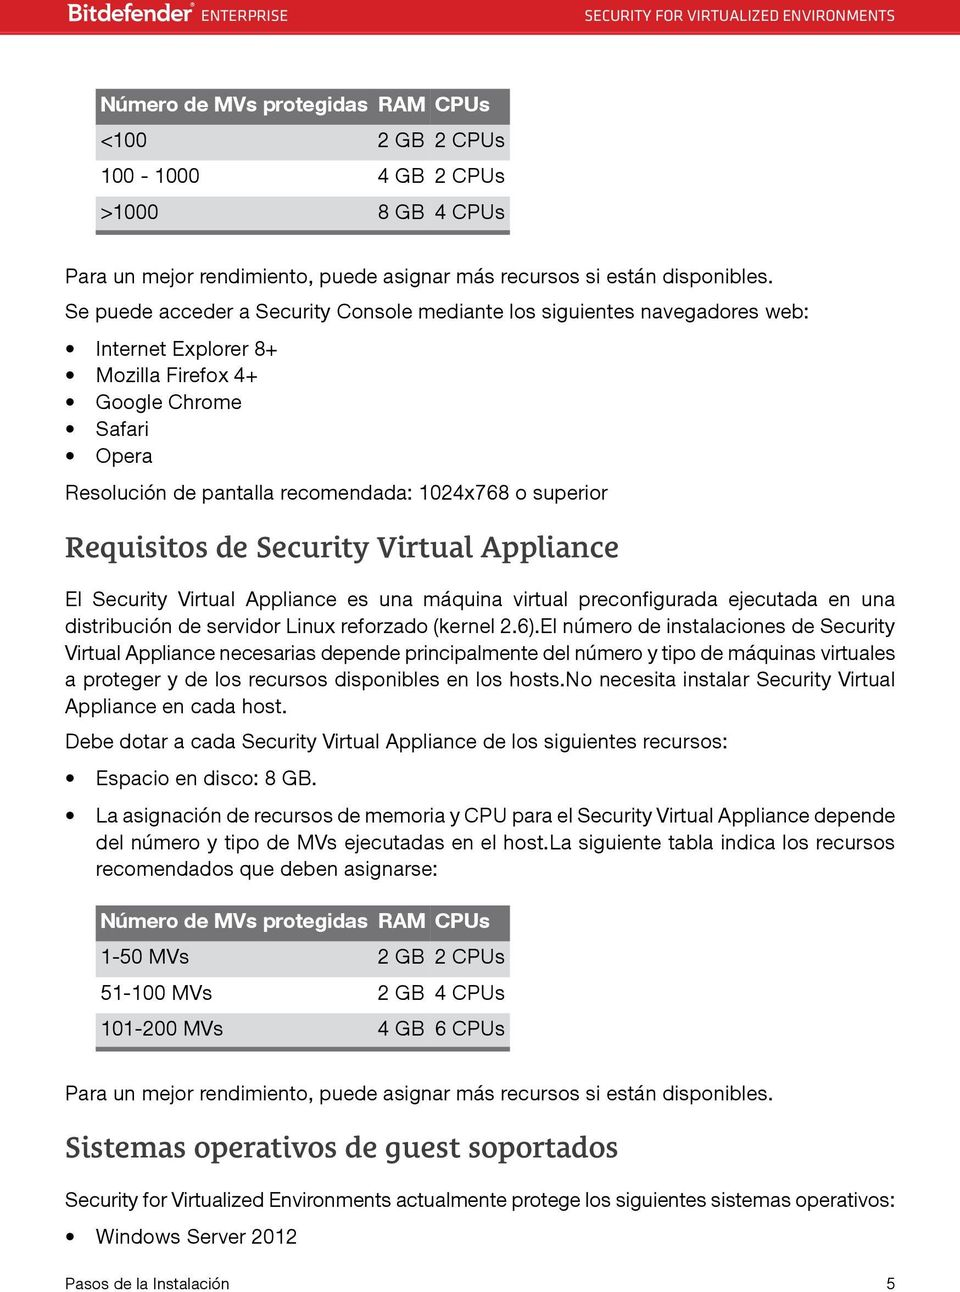 Requisitos de Security Virtual Appliance El Security Virtual Appliance es una máquina virtual preconfigurada ejecutada en una distribución de servidor Linux reforzado (kernel 2.6).